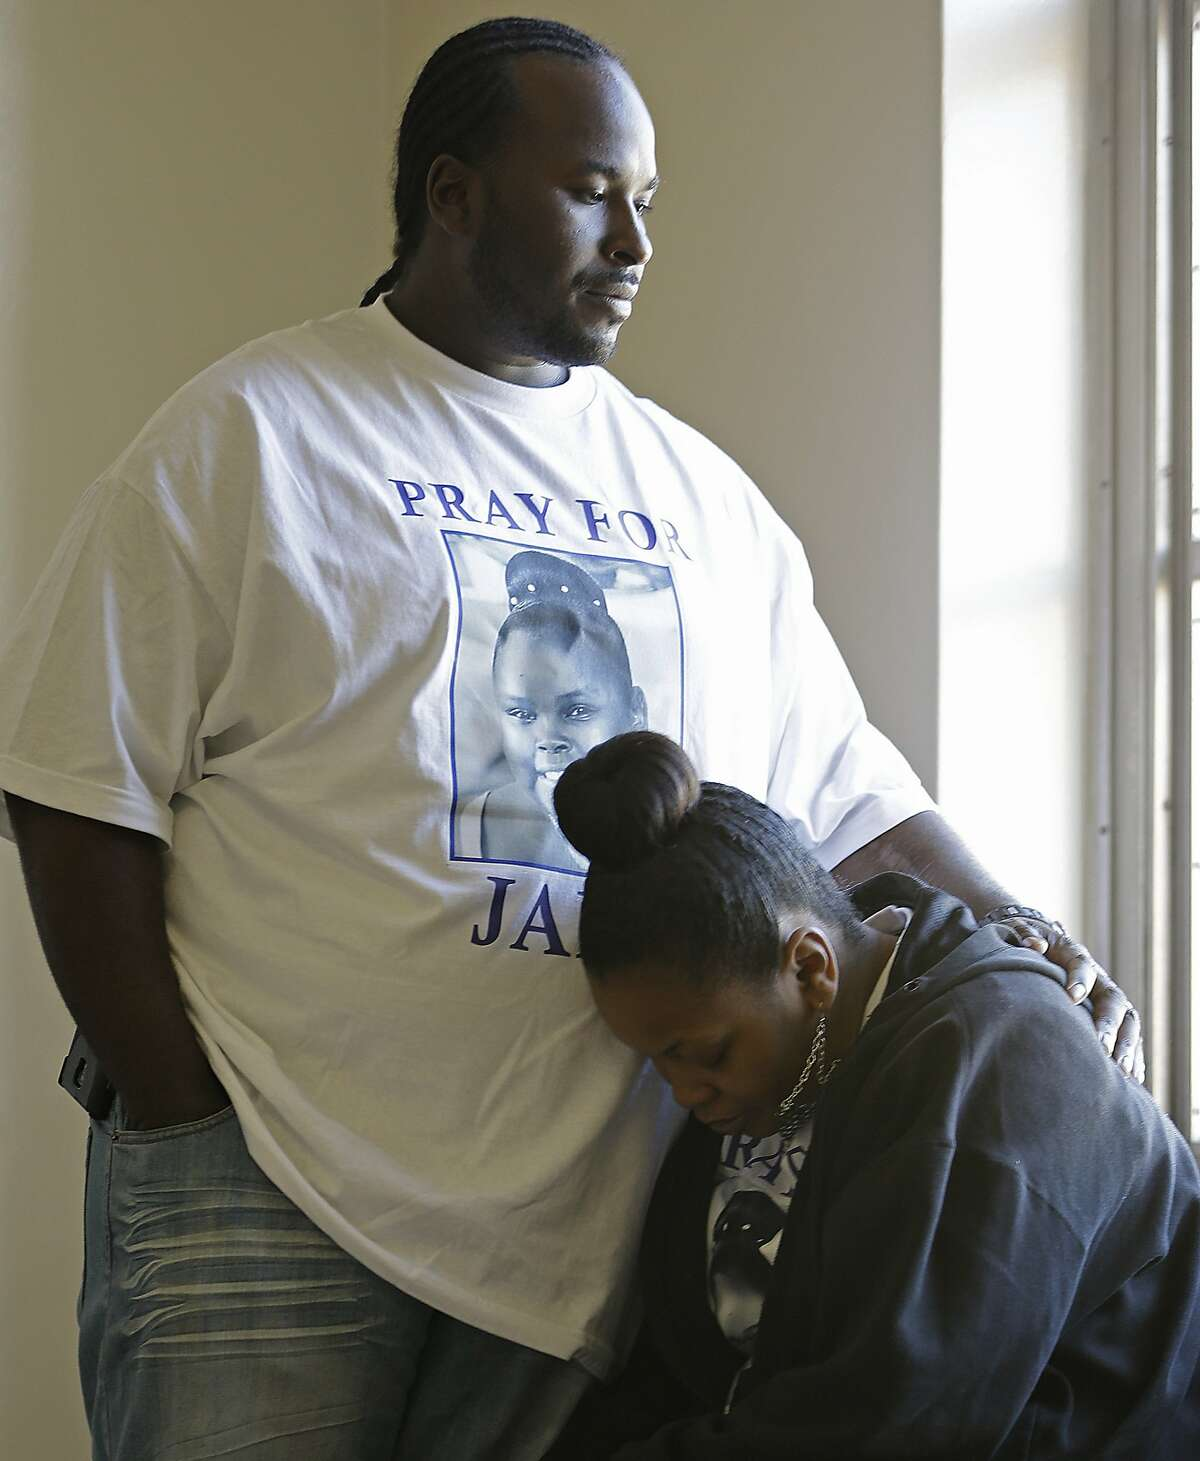 FILE - Marvin Winkfield places his arm around his wife Nailah Winkfield, mother of 13-year-old Jahi McMath, as they wait outside a courtroom in Oakland in this Friday, Jan. 3, 2014 file photo.